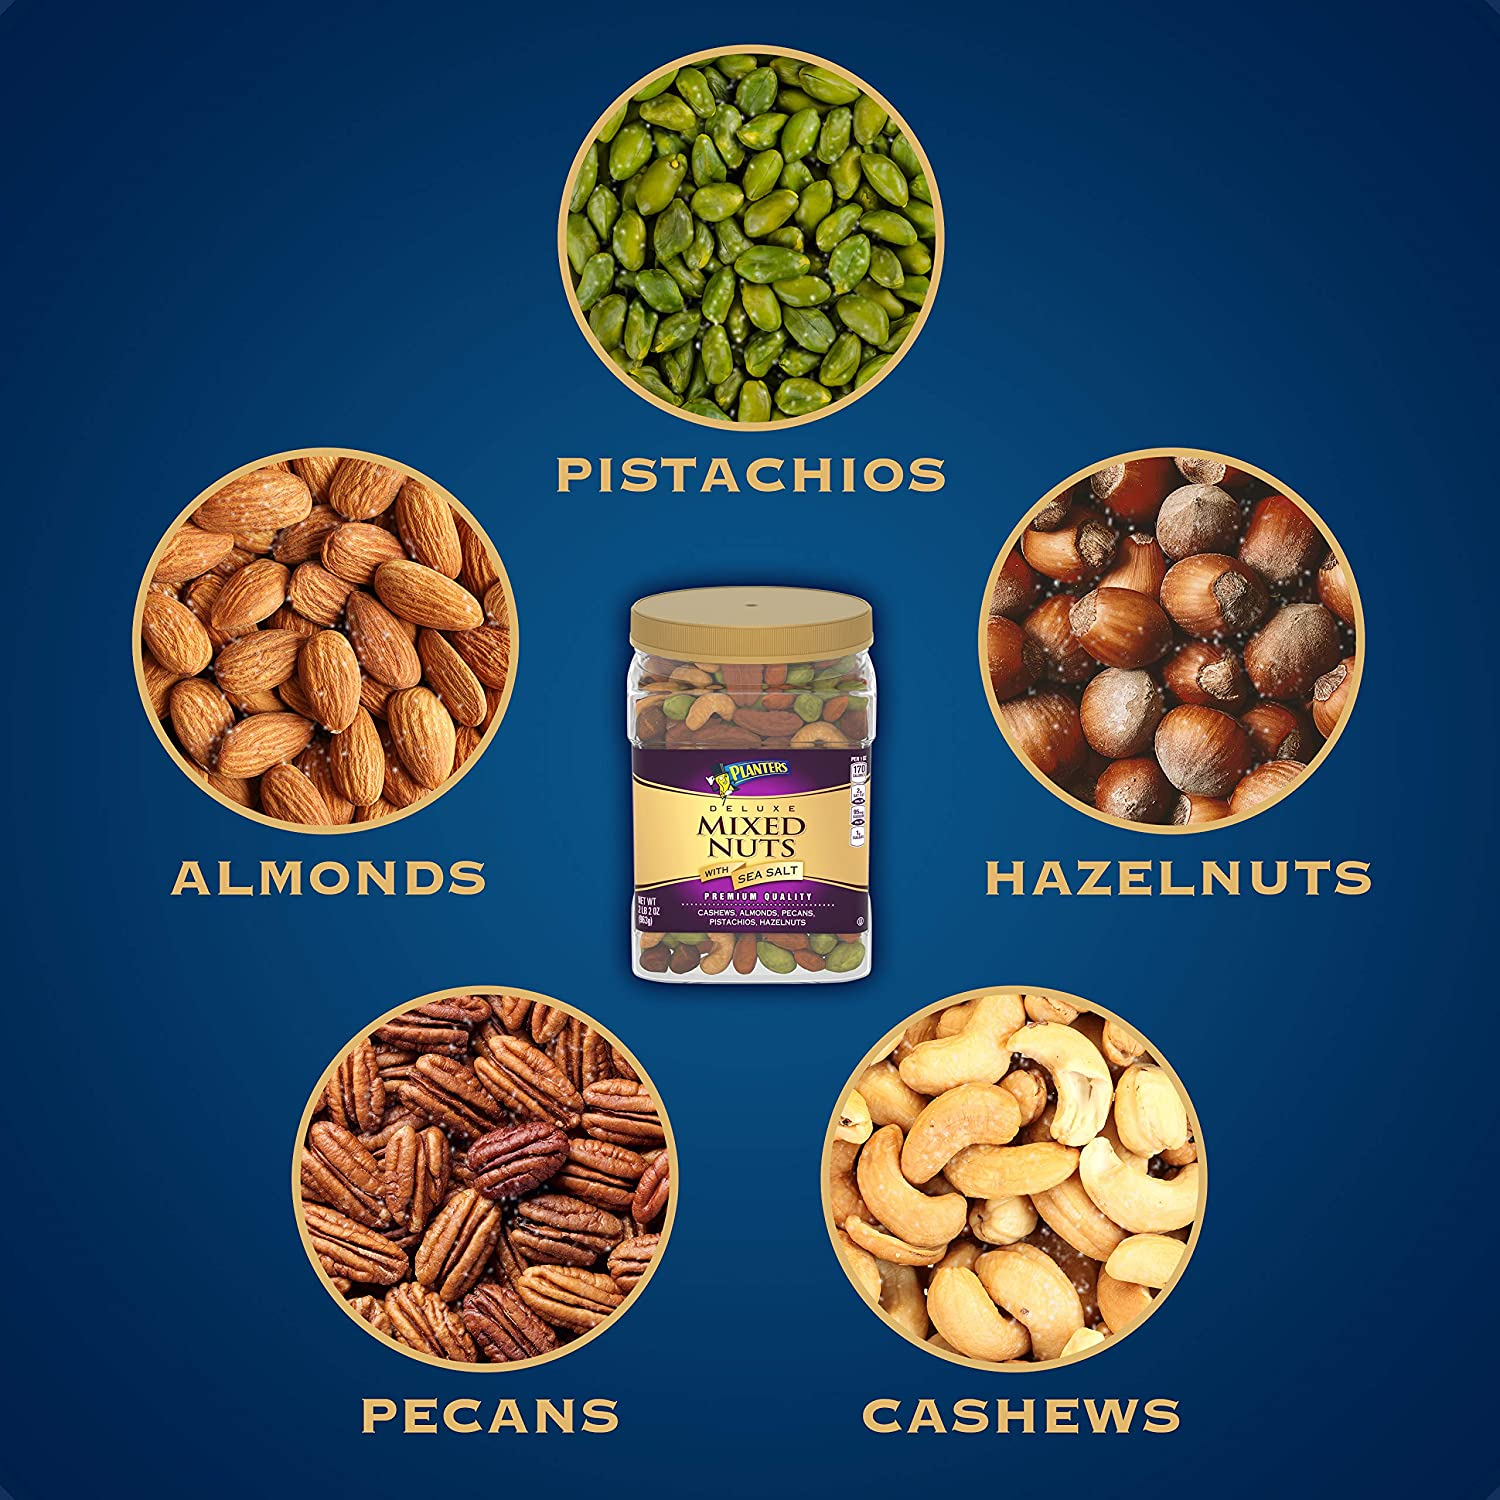 B008YK1U16 PLANTERS Deluxe Salted Mixed Nuts, 34 oz. Resealable Canister   Contains Cashews, Almonds, Pecans, Pistachios & Hazelnuts Seasoned with Sea Salt 819jQMHWZEL